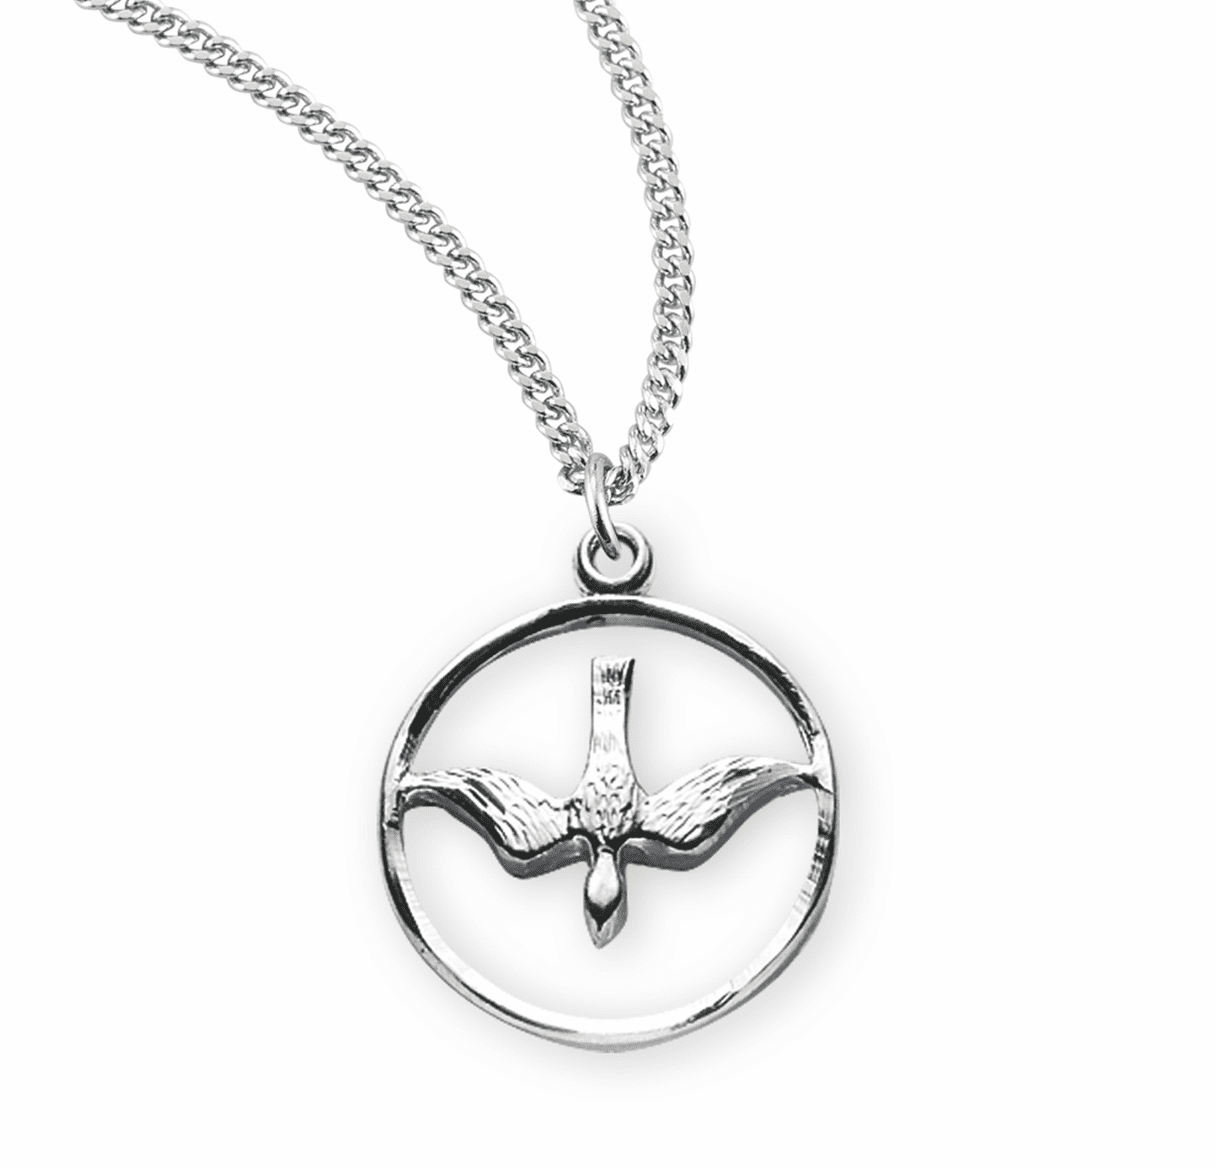 HMH Religious Sterling Silver Open Circle with Dove Necklace